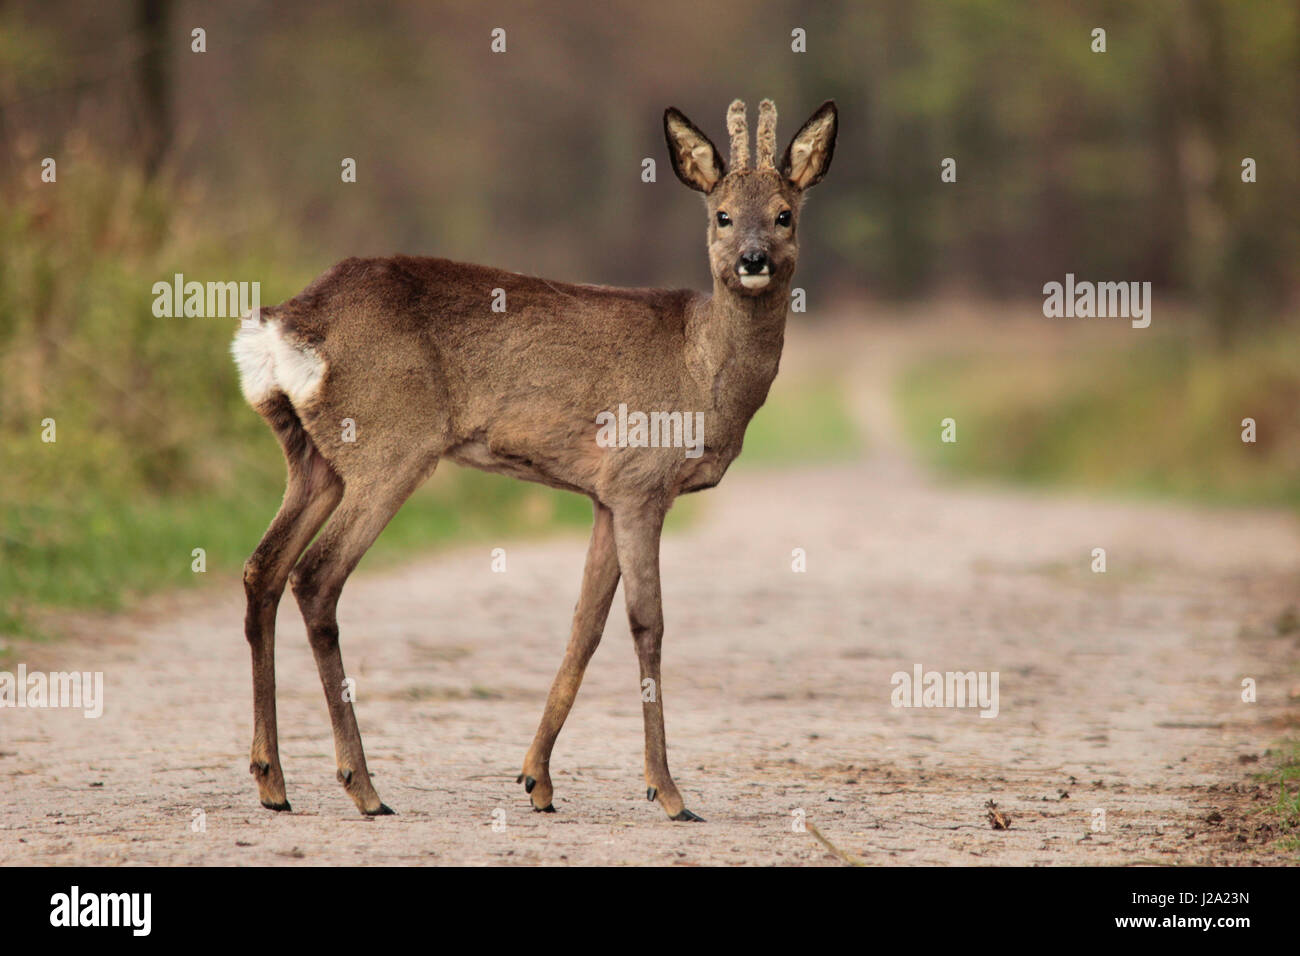 Roe deer in a forest, early spring Stock Photo